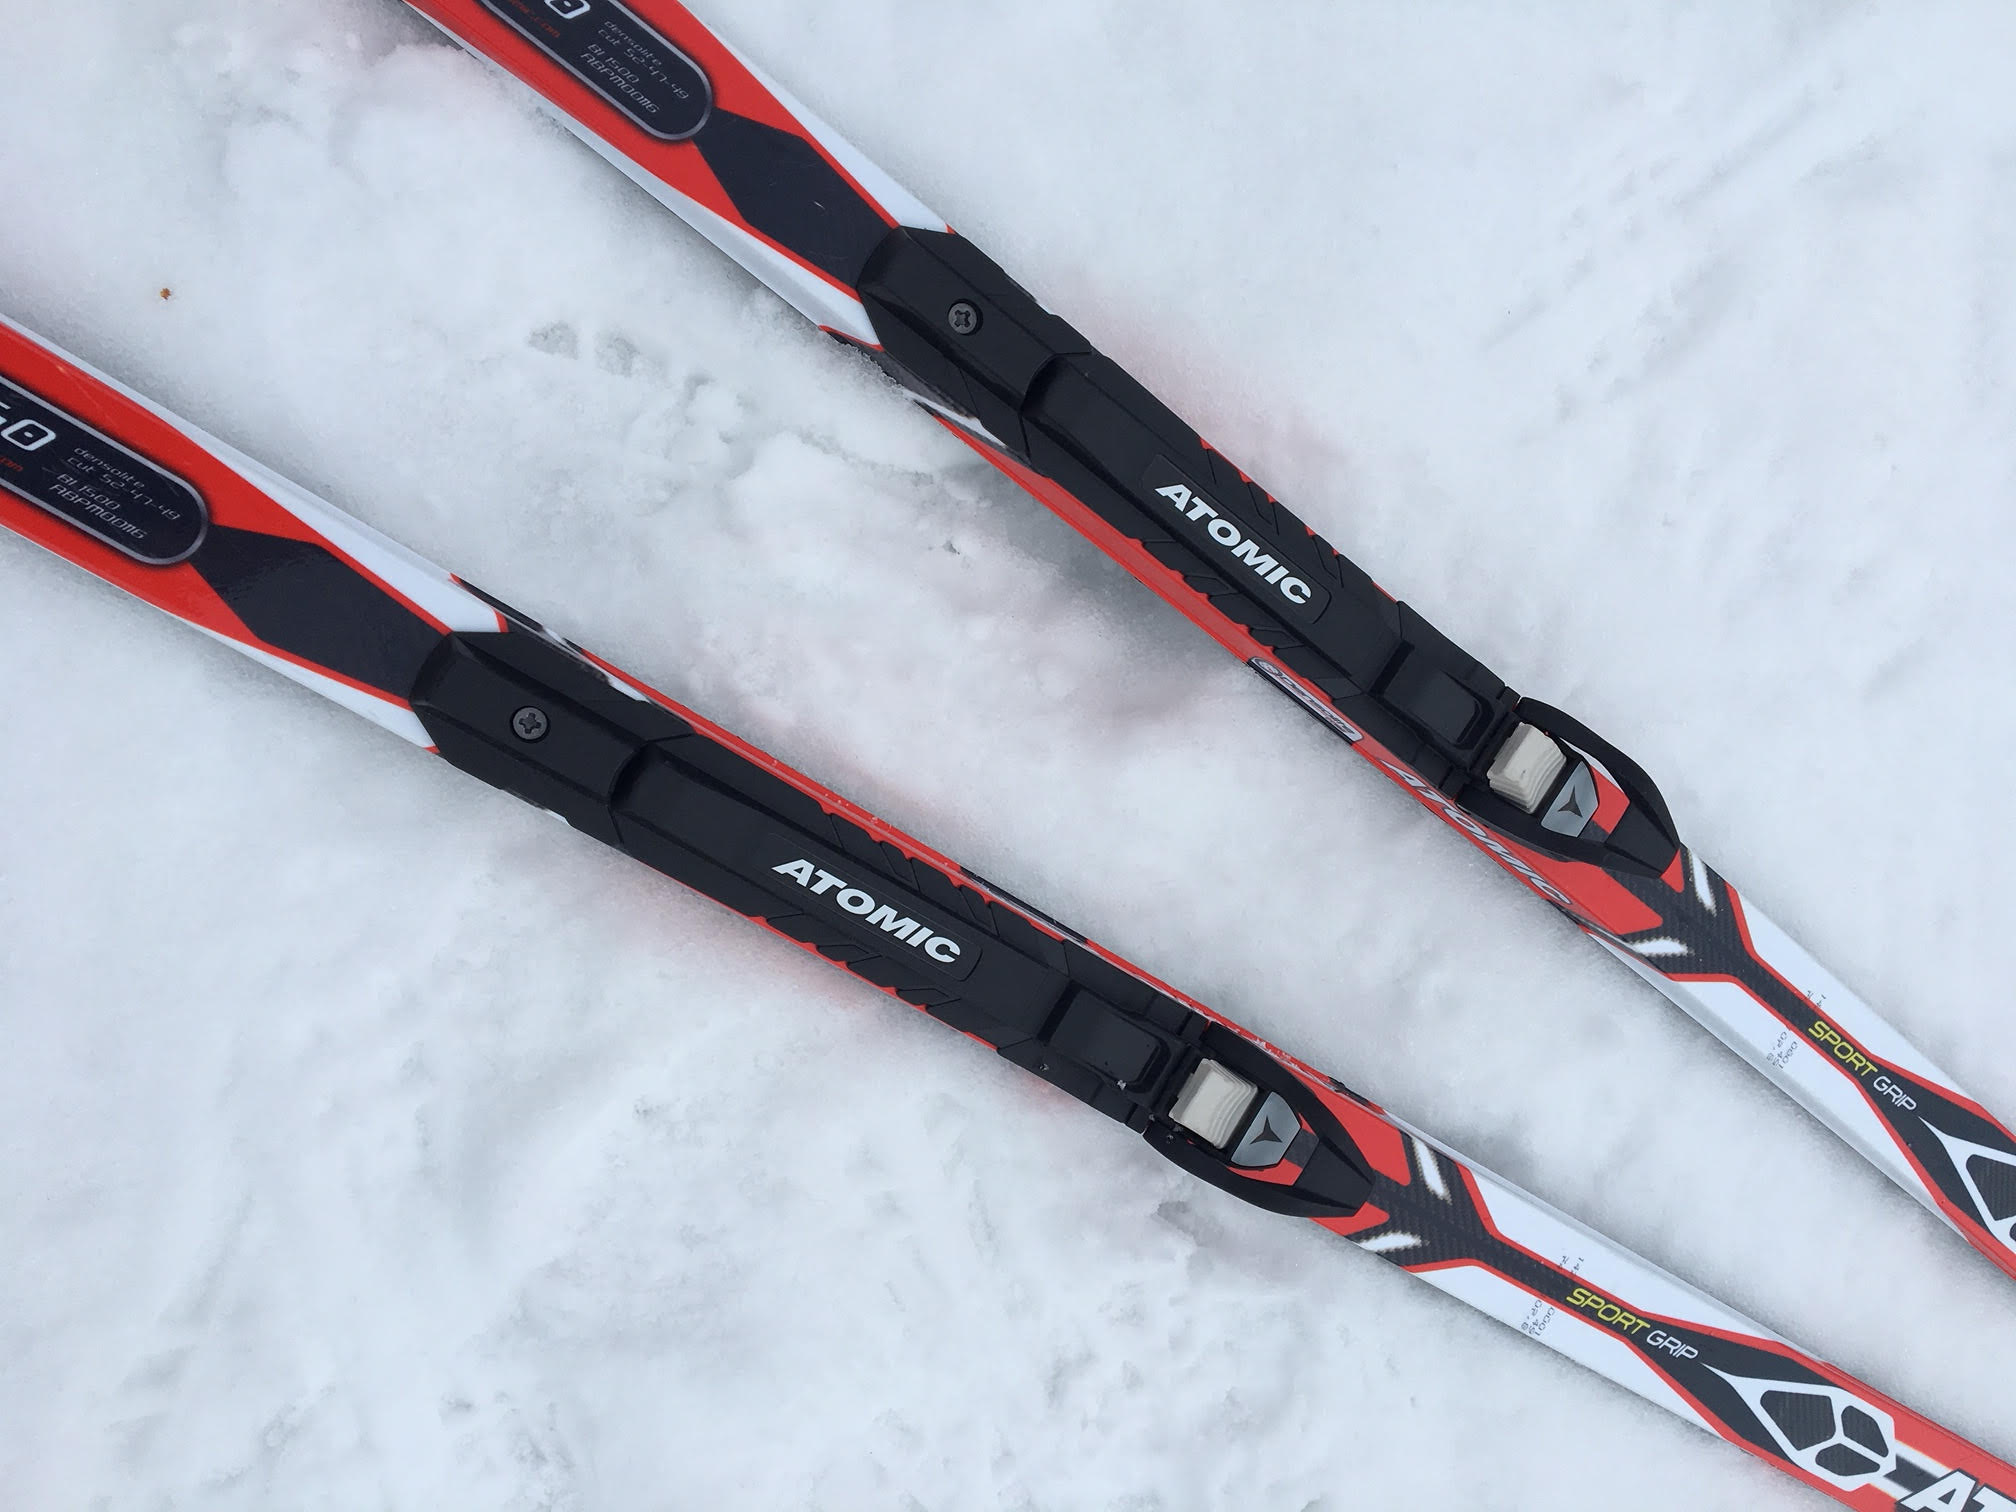 Coolest 24 Cross Country Skiing Bindings | Super Sport Products